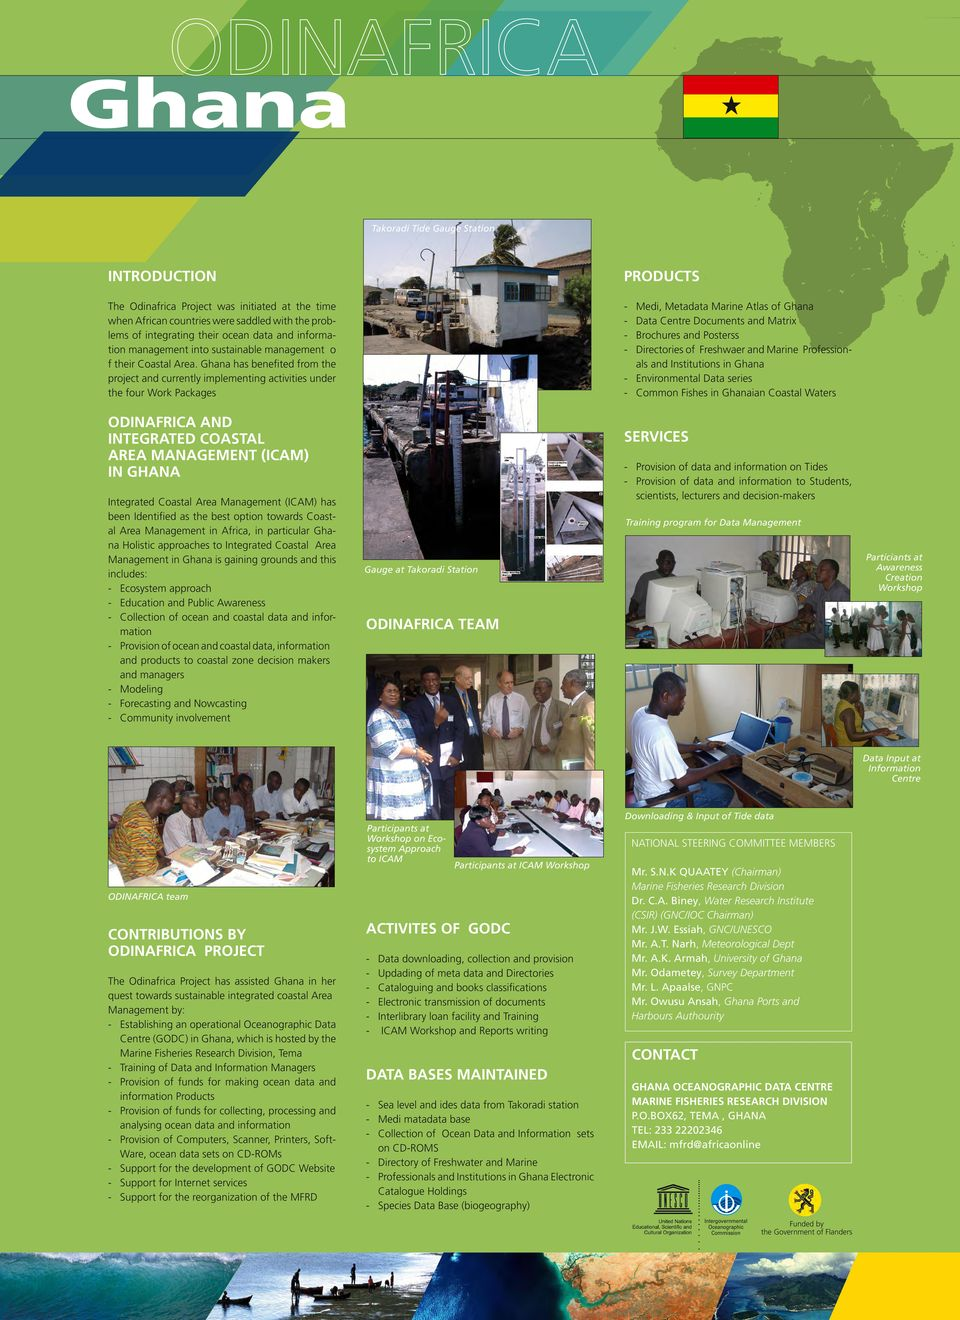 Ghana has benefited from the project and currently implementing activities under the four Work Packages - Medi, Metadata Marine Atlas of Ghana - Data Centre Documents and Matrix - Brochures and